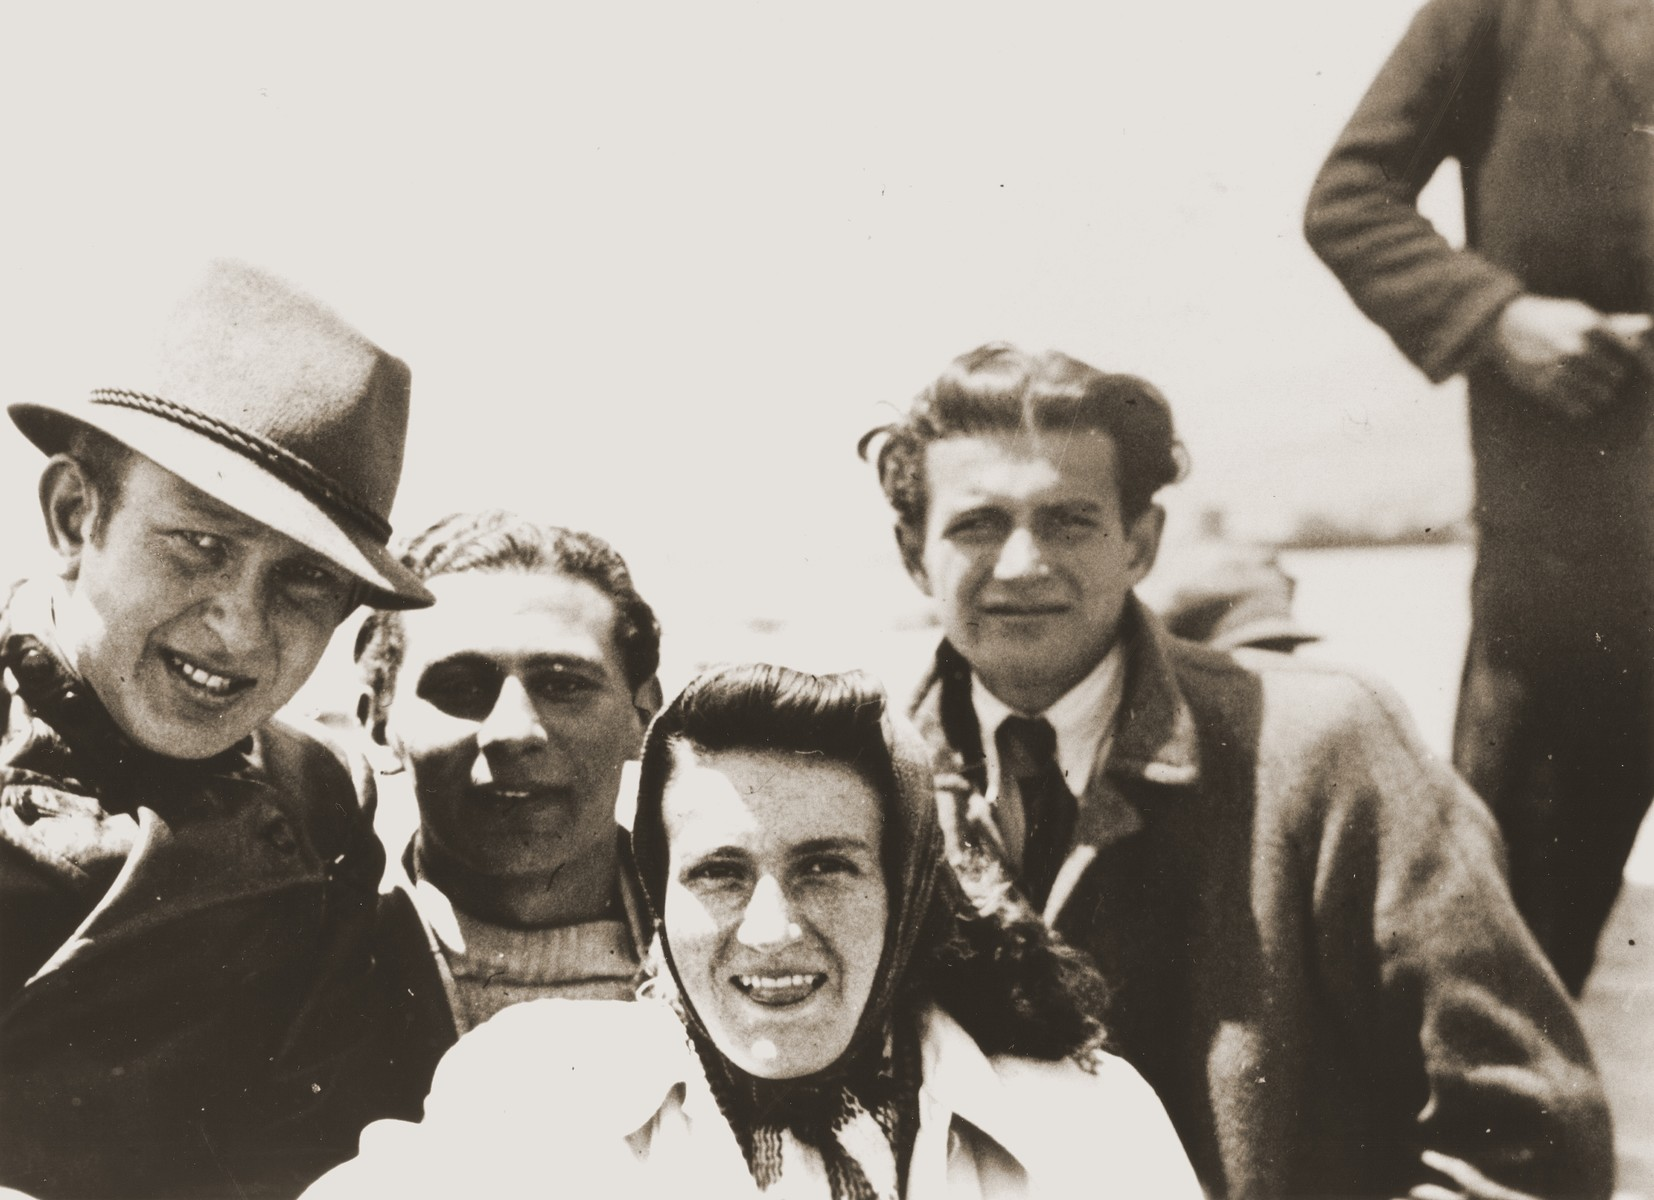 Austrian Jewish refugees on an excursion to Lake Titicaca in Bolivia.  Pictured from left to right are Eugen Spitzer; Heinz Jordan; Rosie Spitzer; and Julius Wolfinger (Rosie's brother).